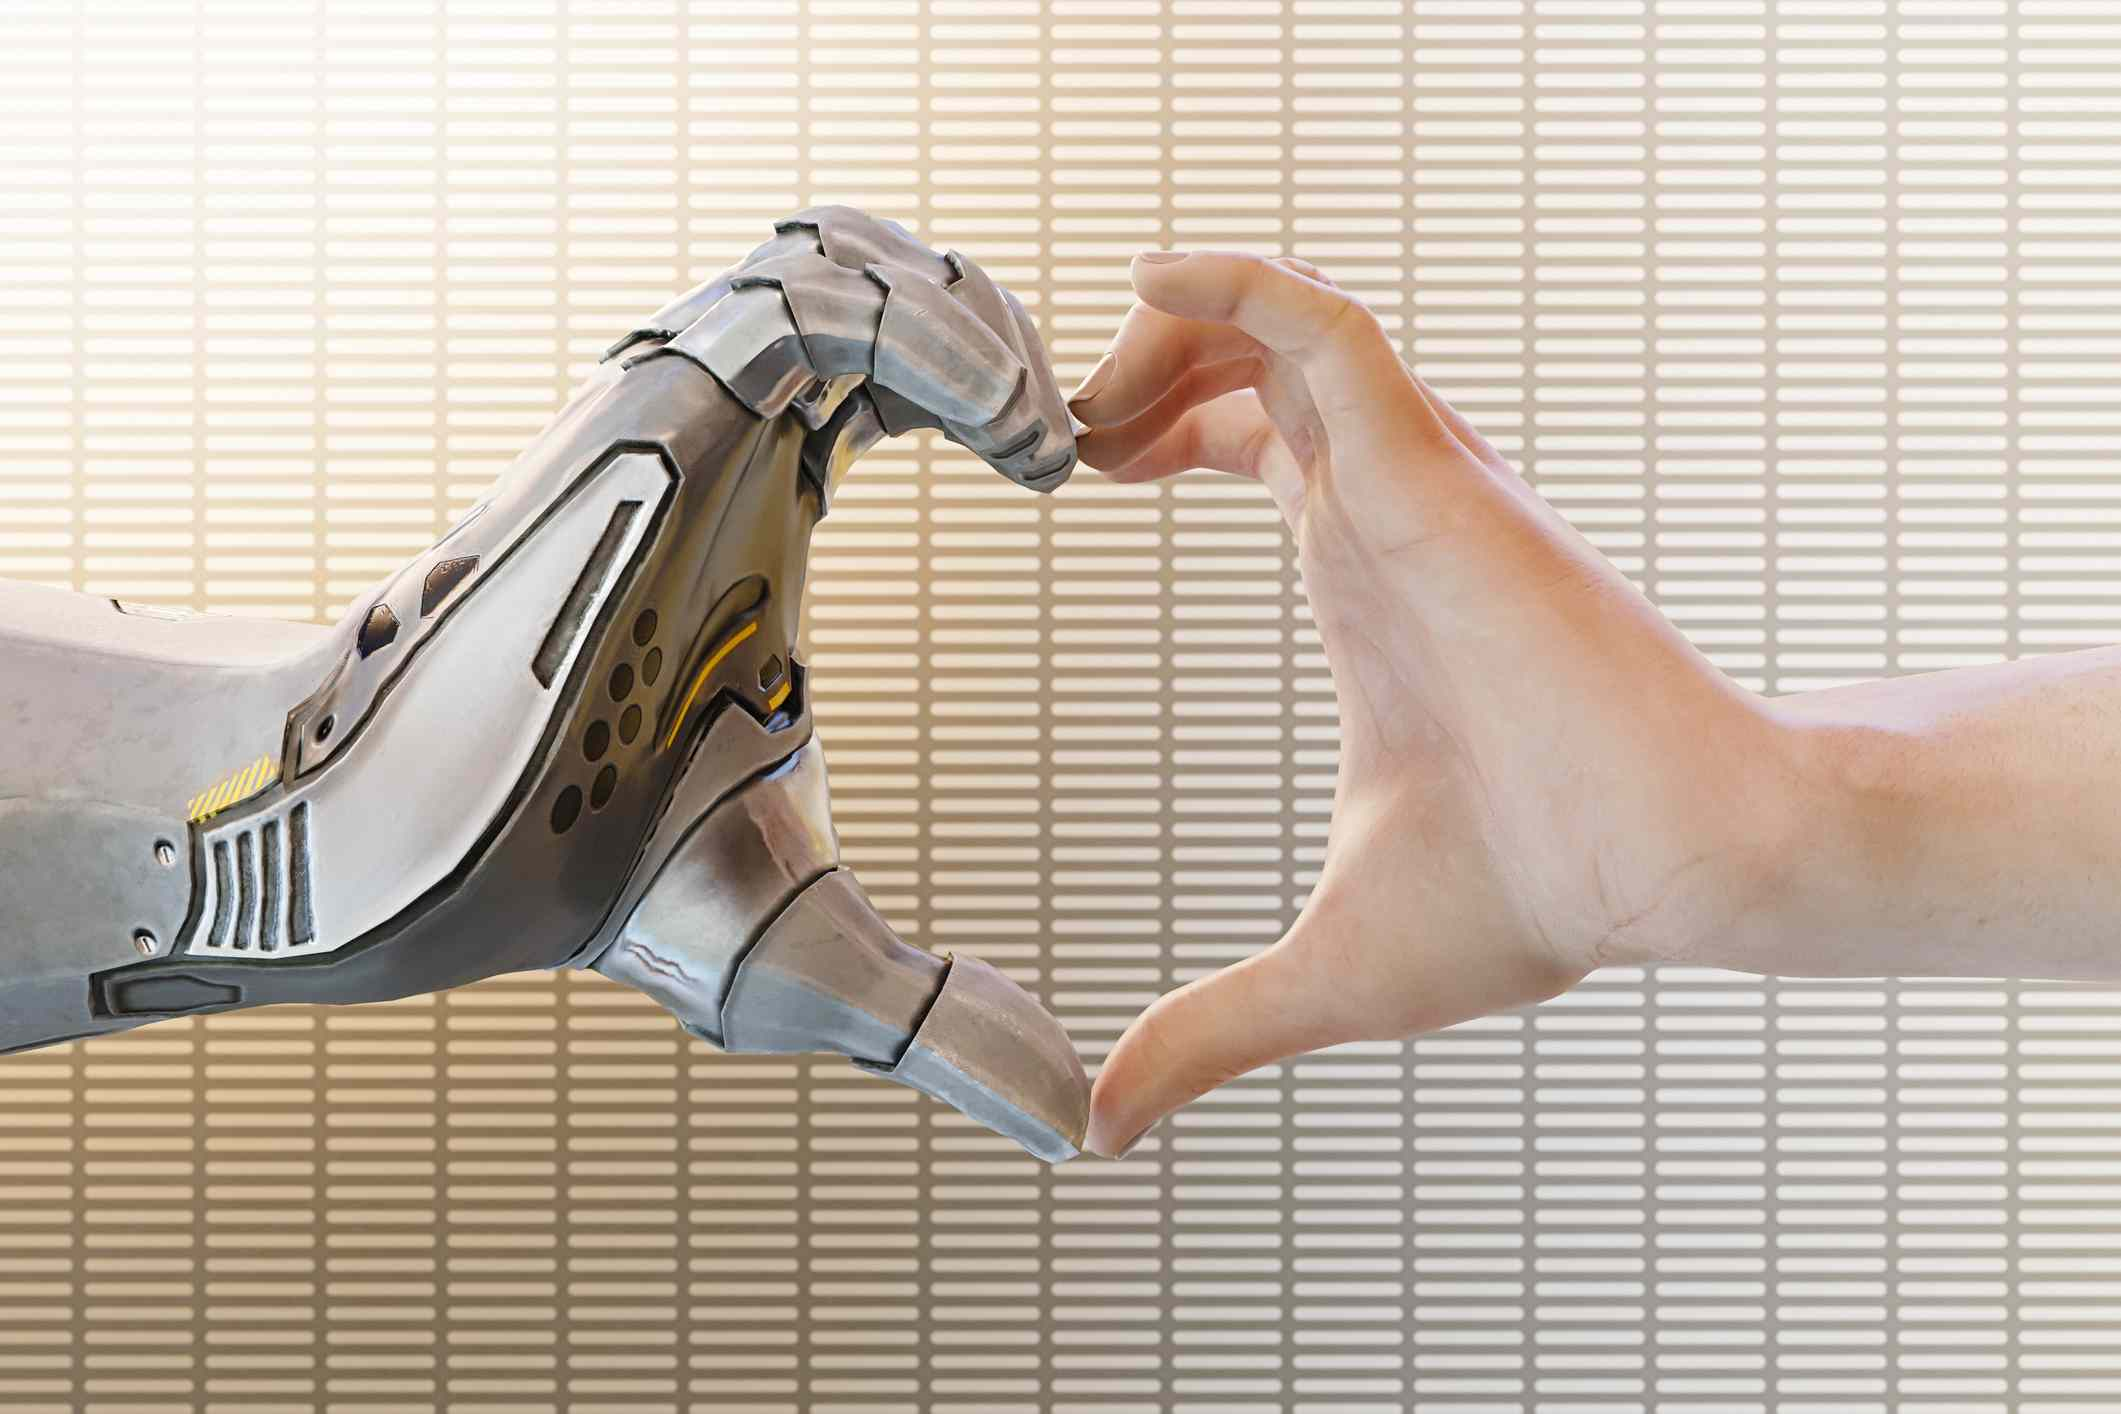 A robot hand and a human hand forming the shape of a heart.